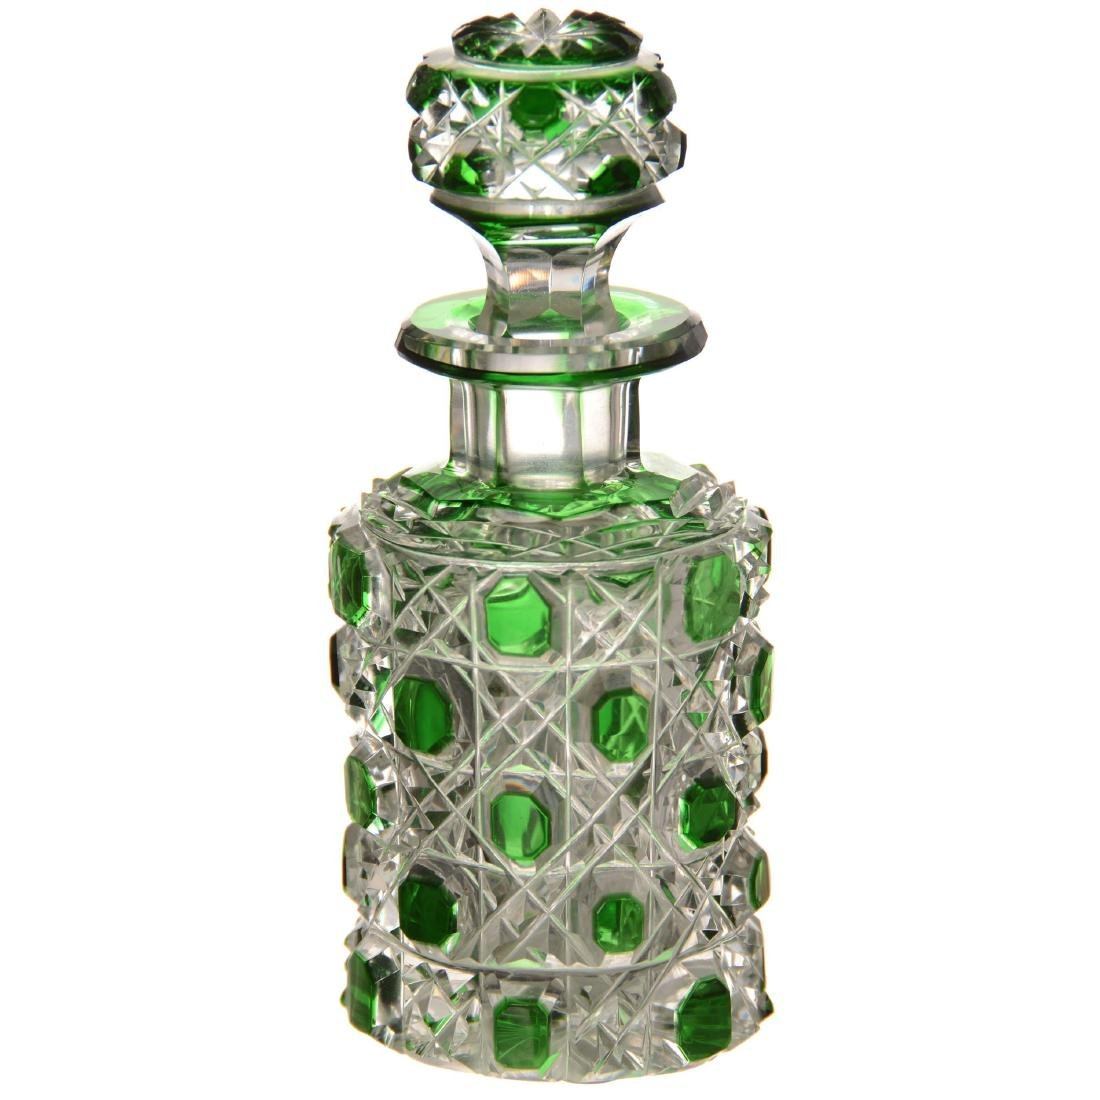 Green Cut to Clear Perfume Bottle